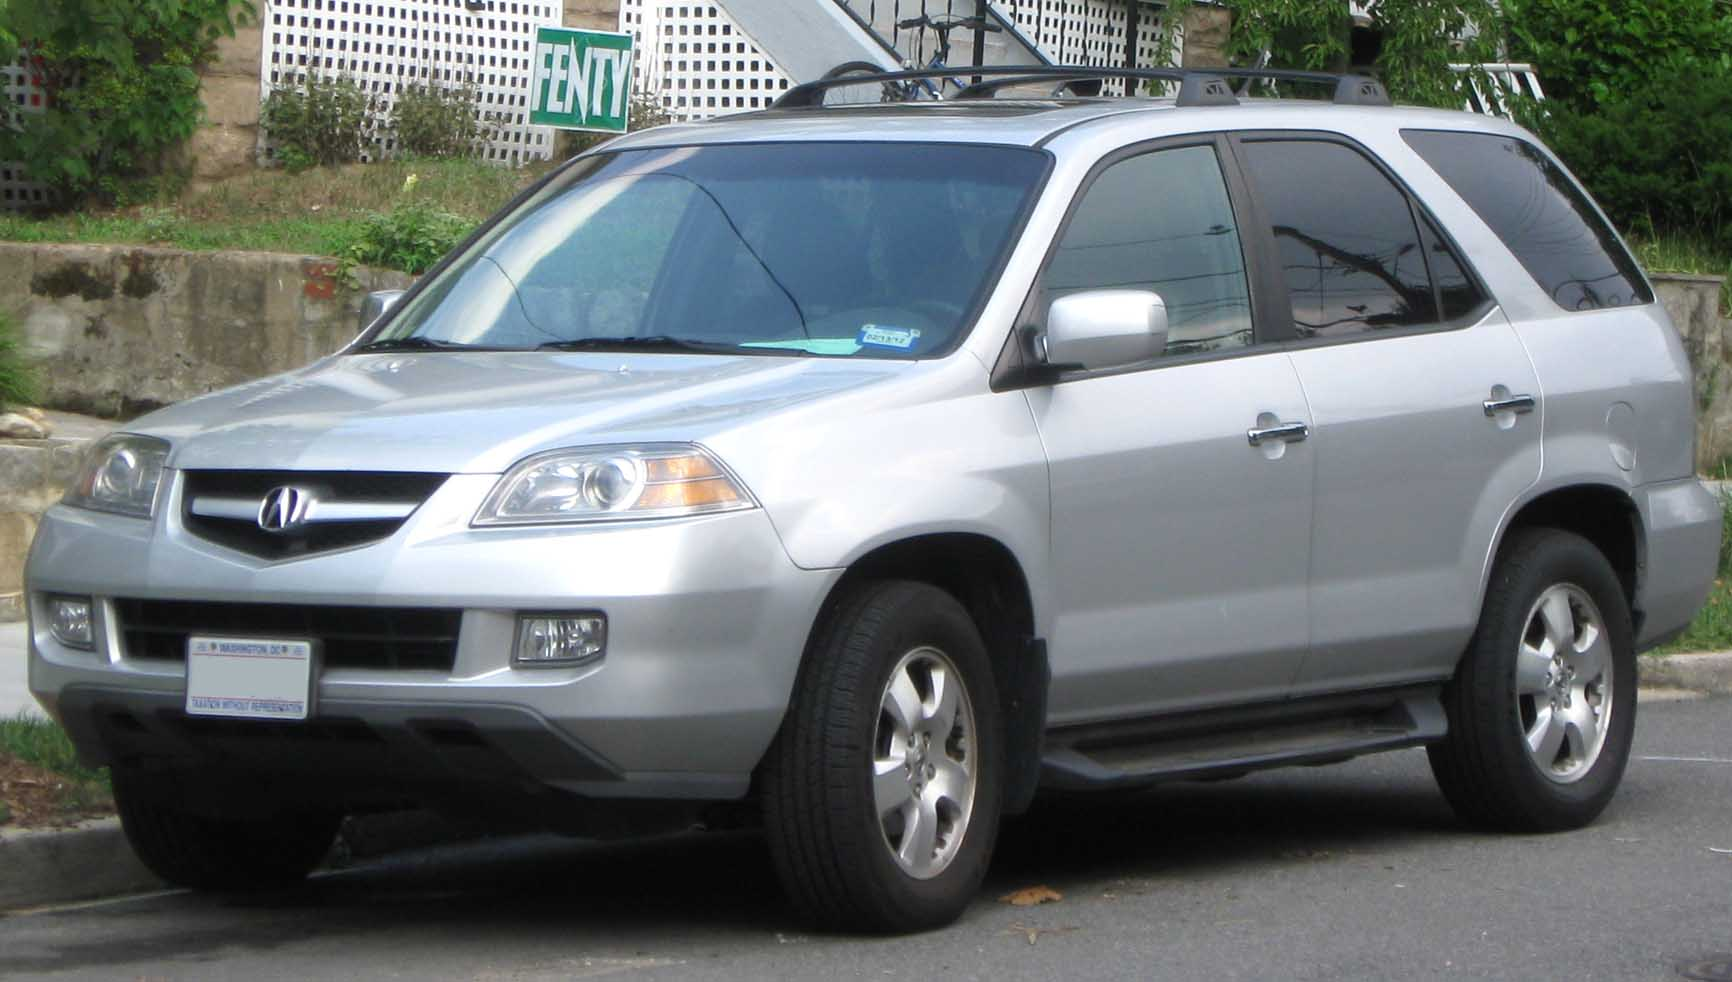 File:2004-2006 Acura MDX -- 07-15-2010.jpg - Wikimedia Commons